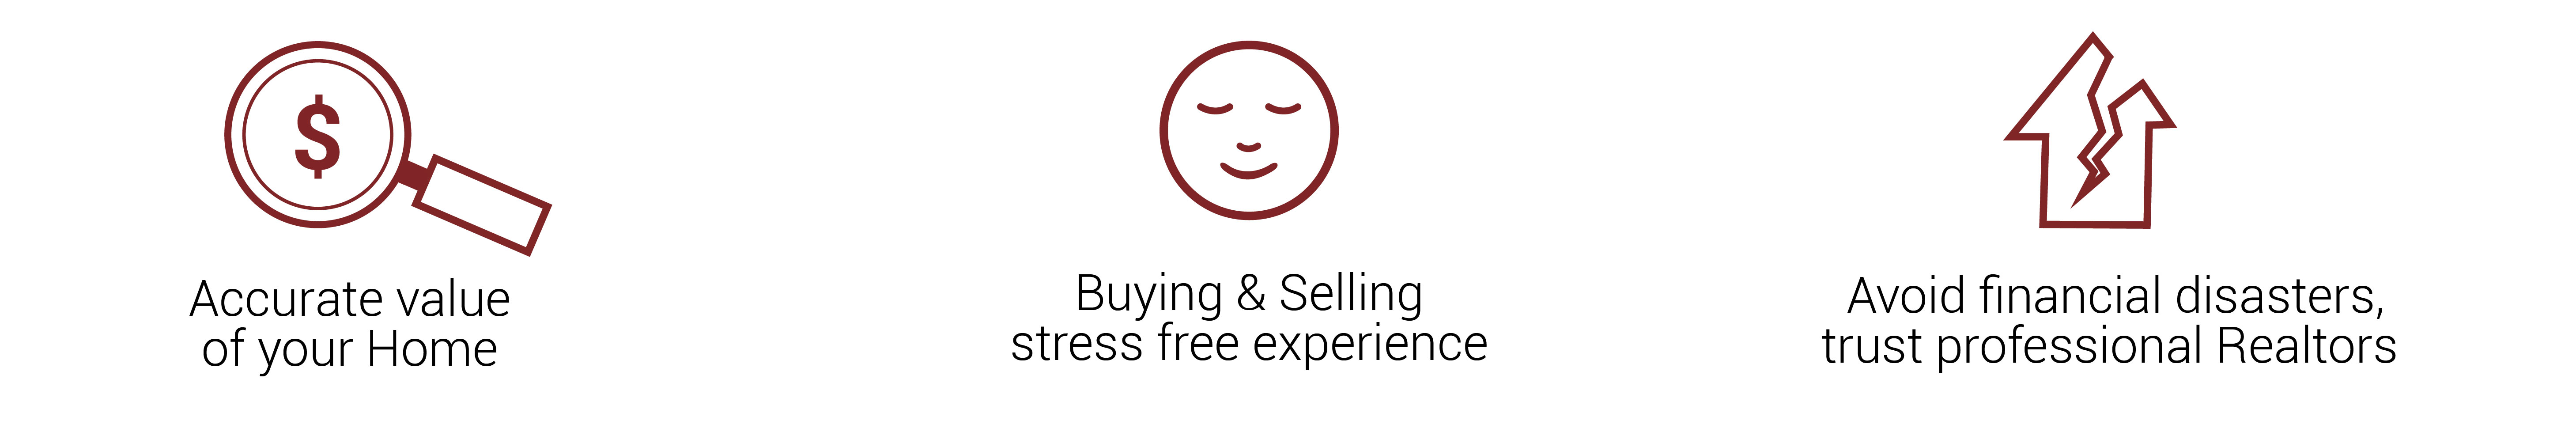 accurate value, stress free experience